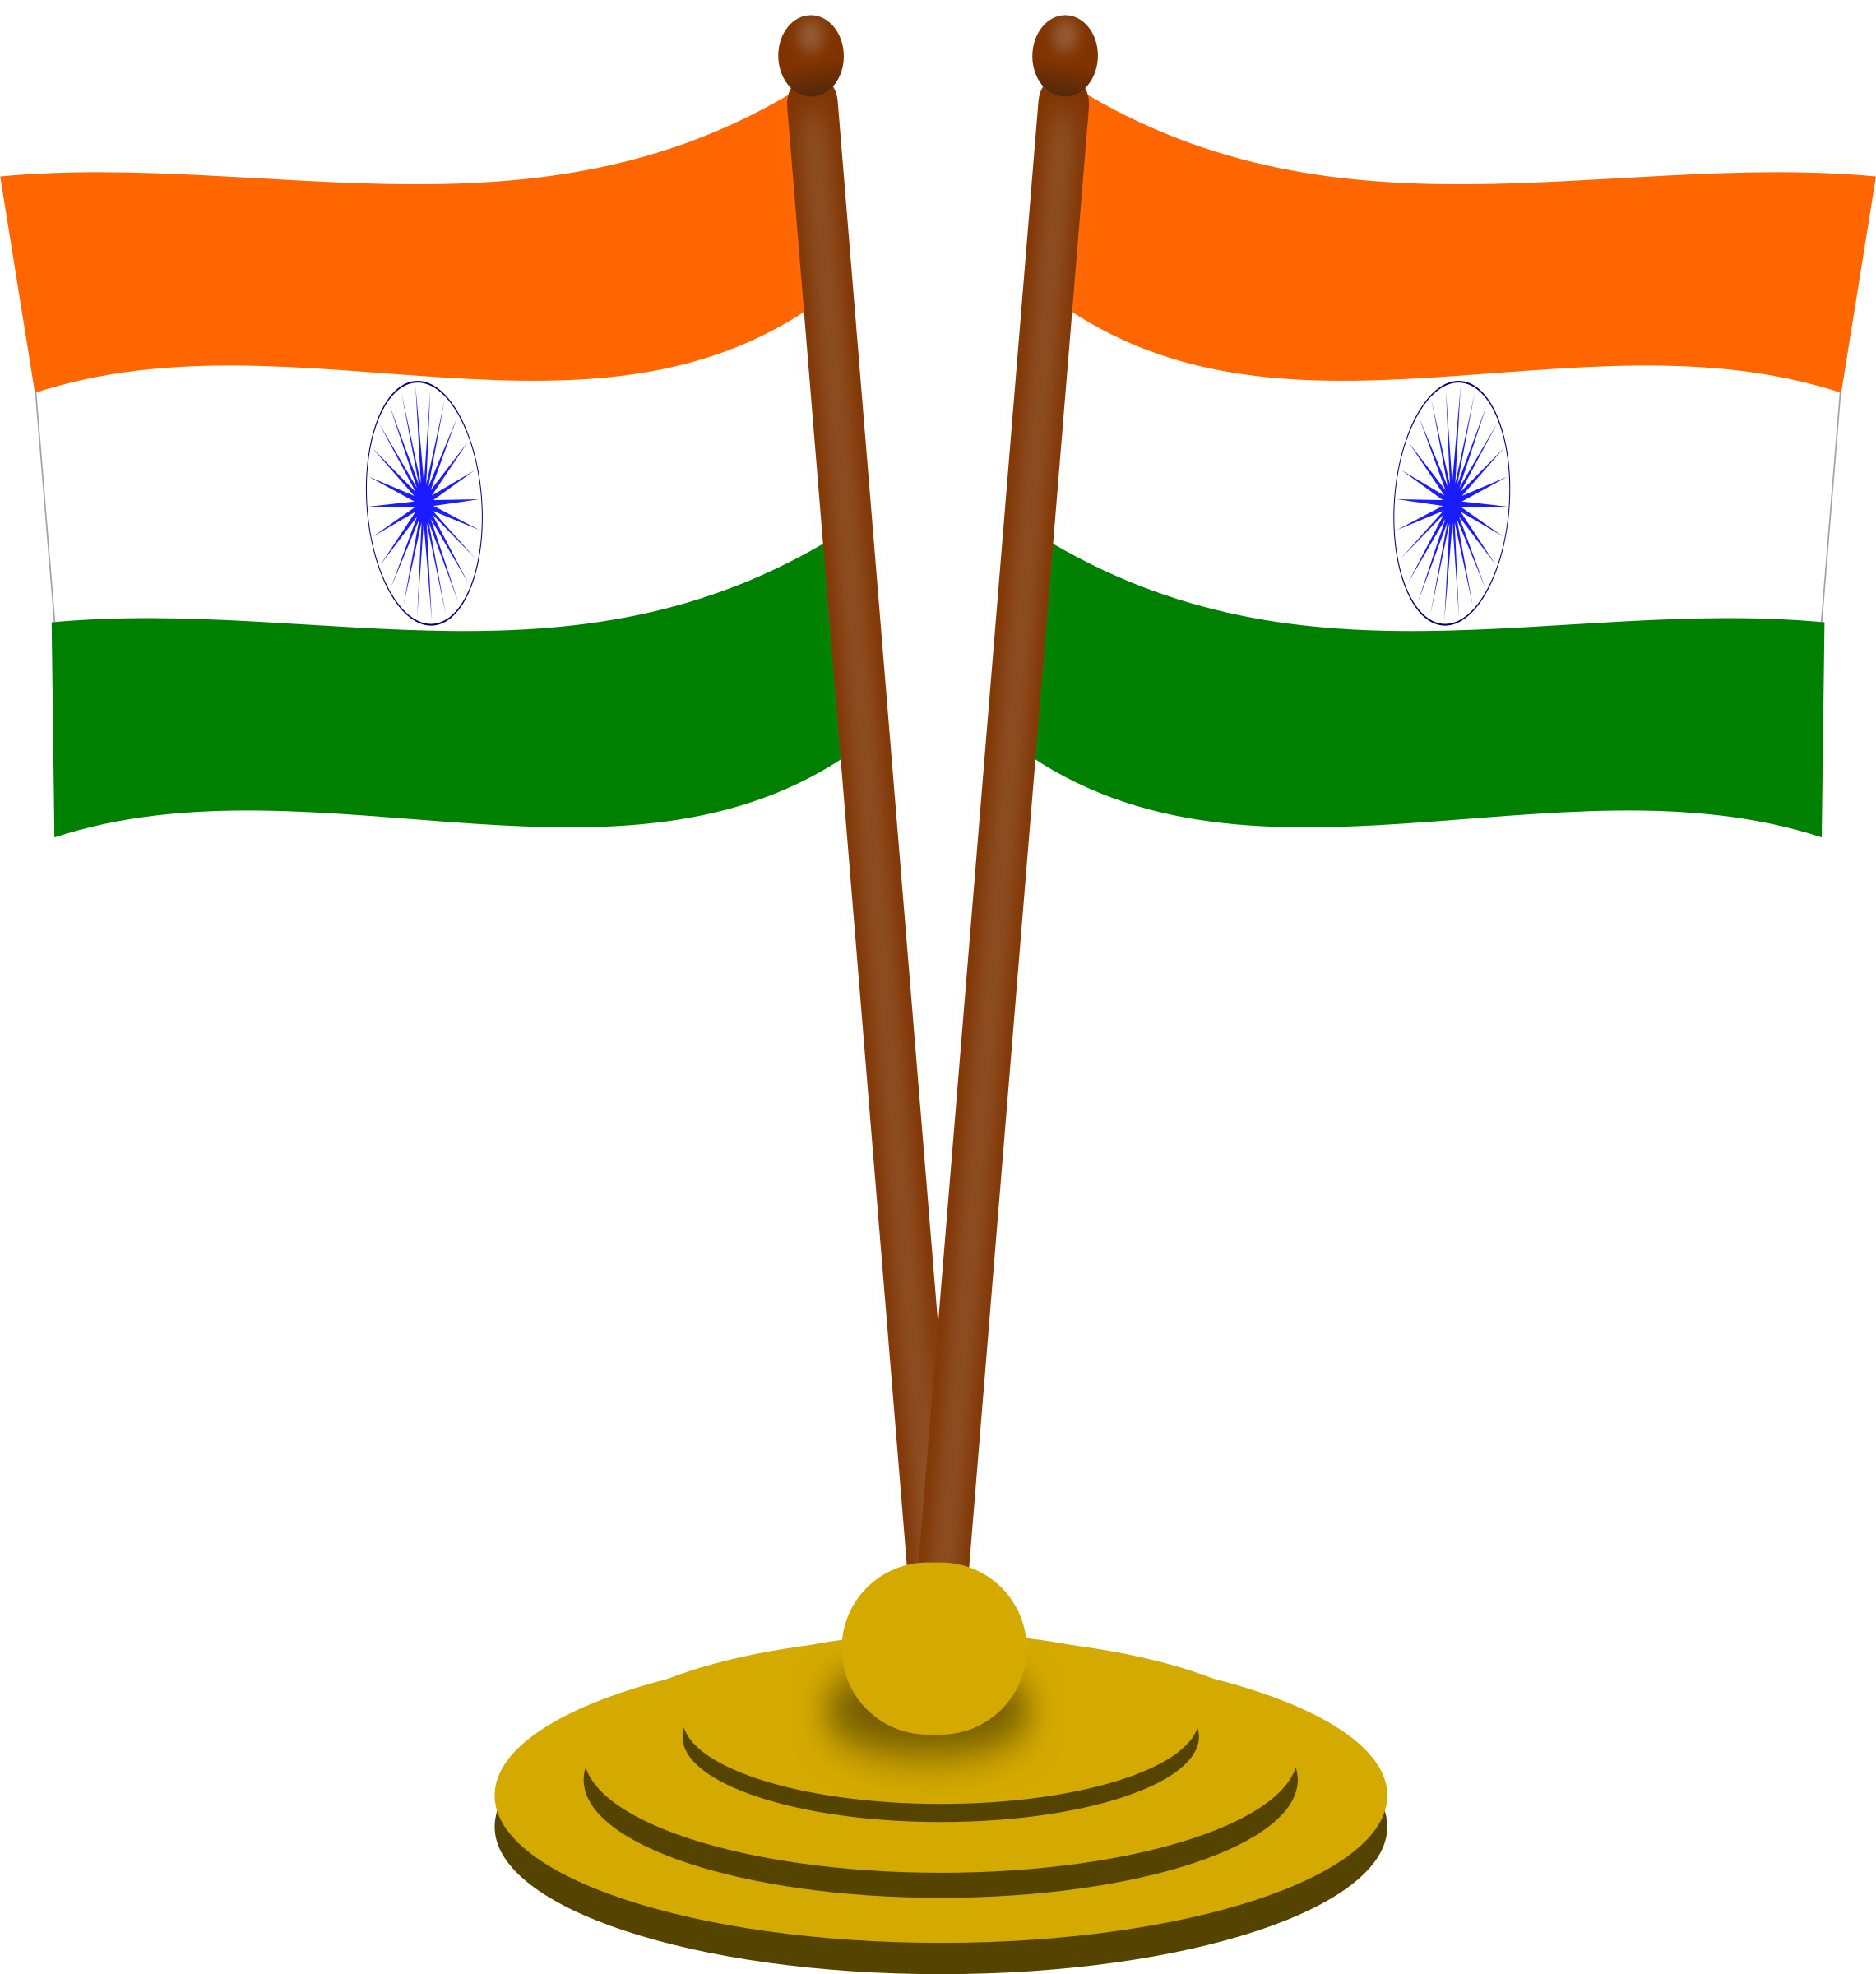 Indian football clipart library Image India Flag Clip Art - 6823 - TransparentPNG library